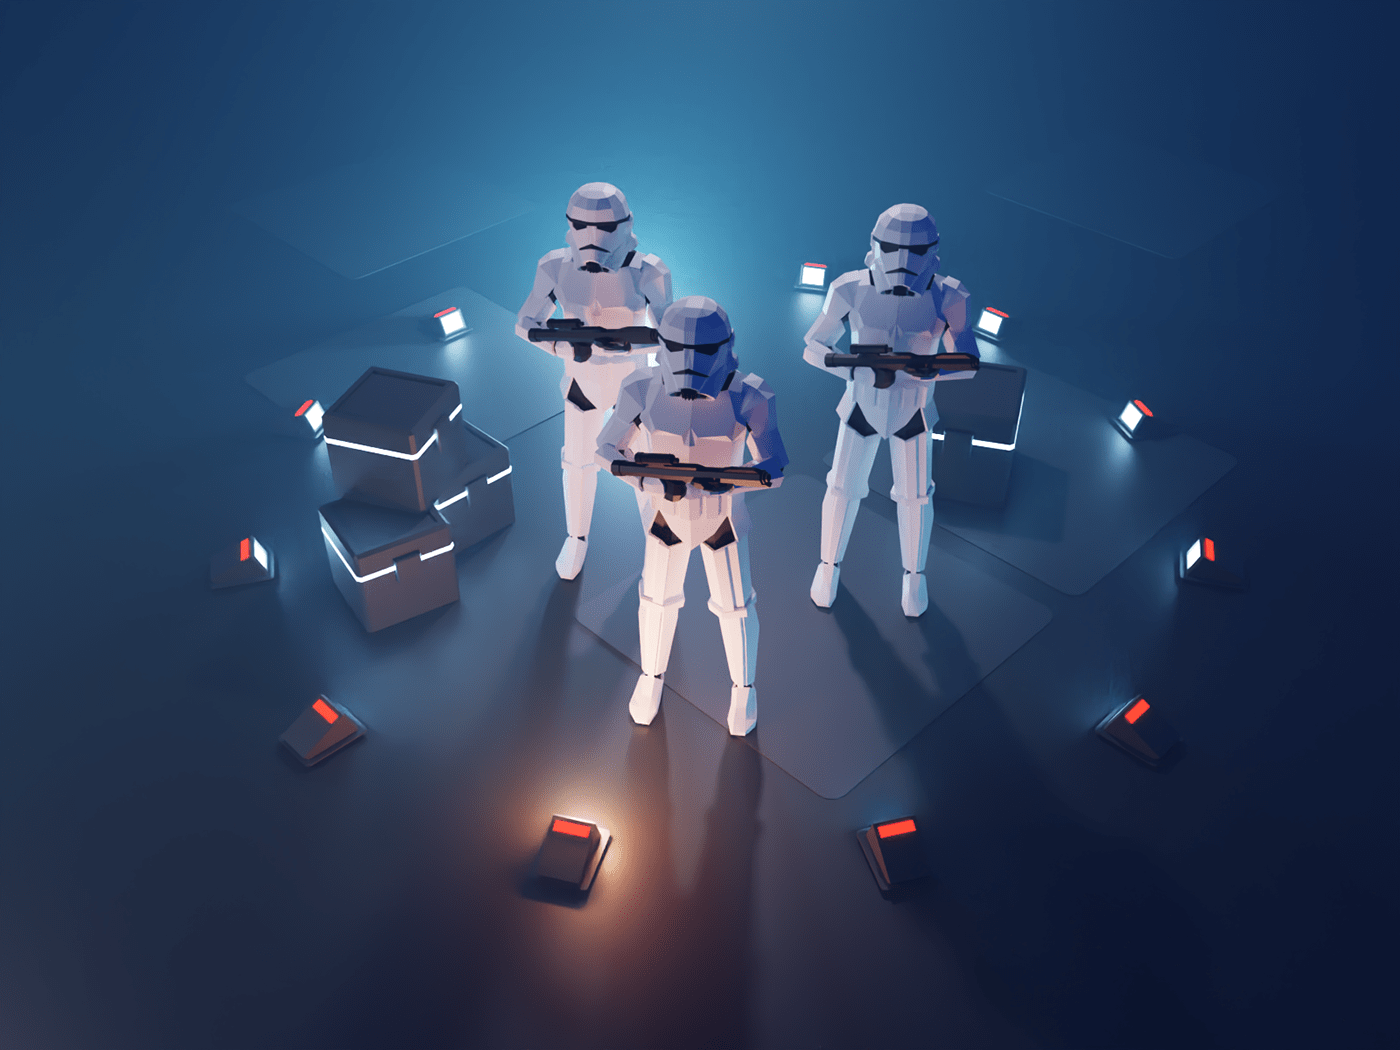 Imperial stromtroopers in cargo bay